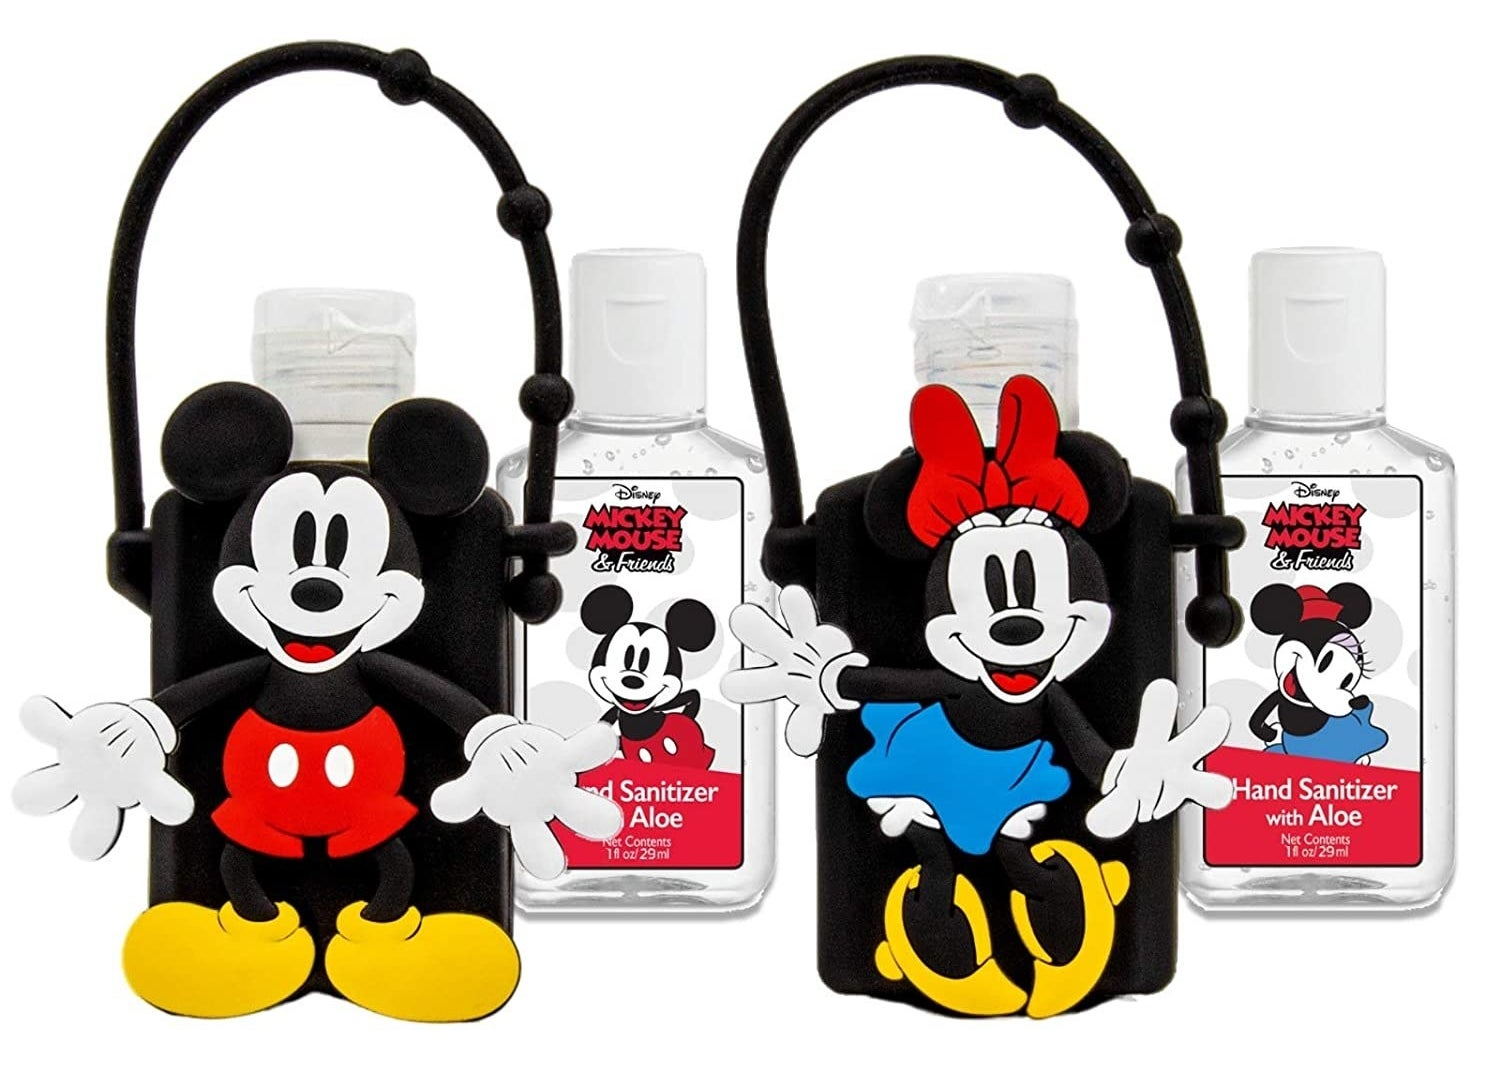 Mickey and Minnie hand sanitizers with holders